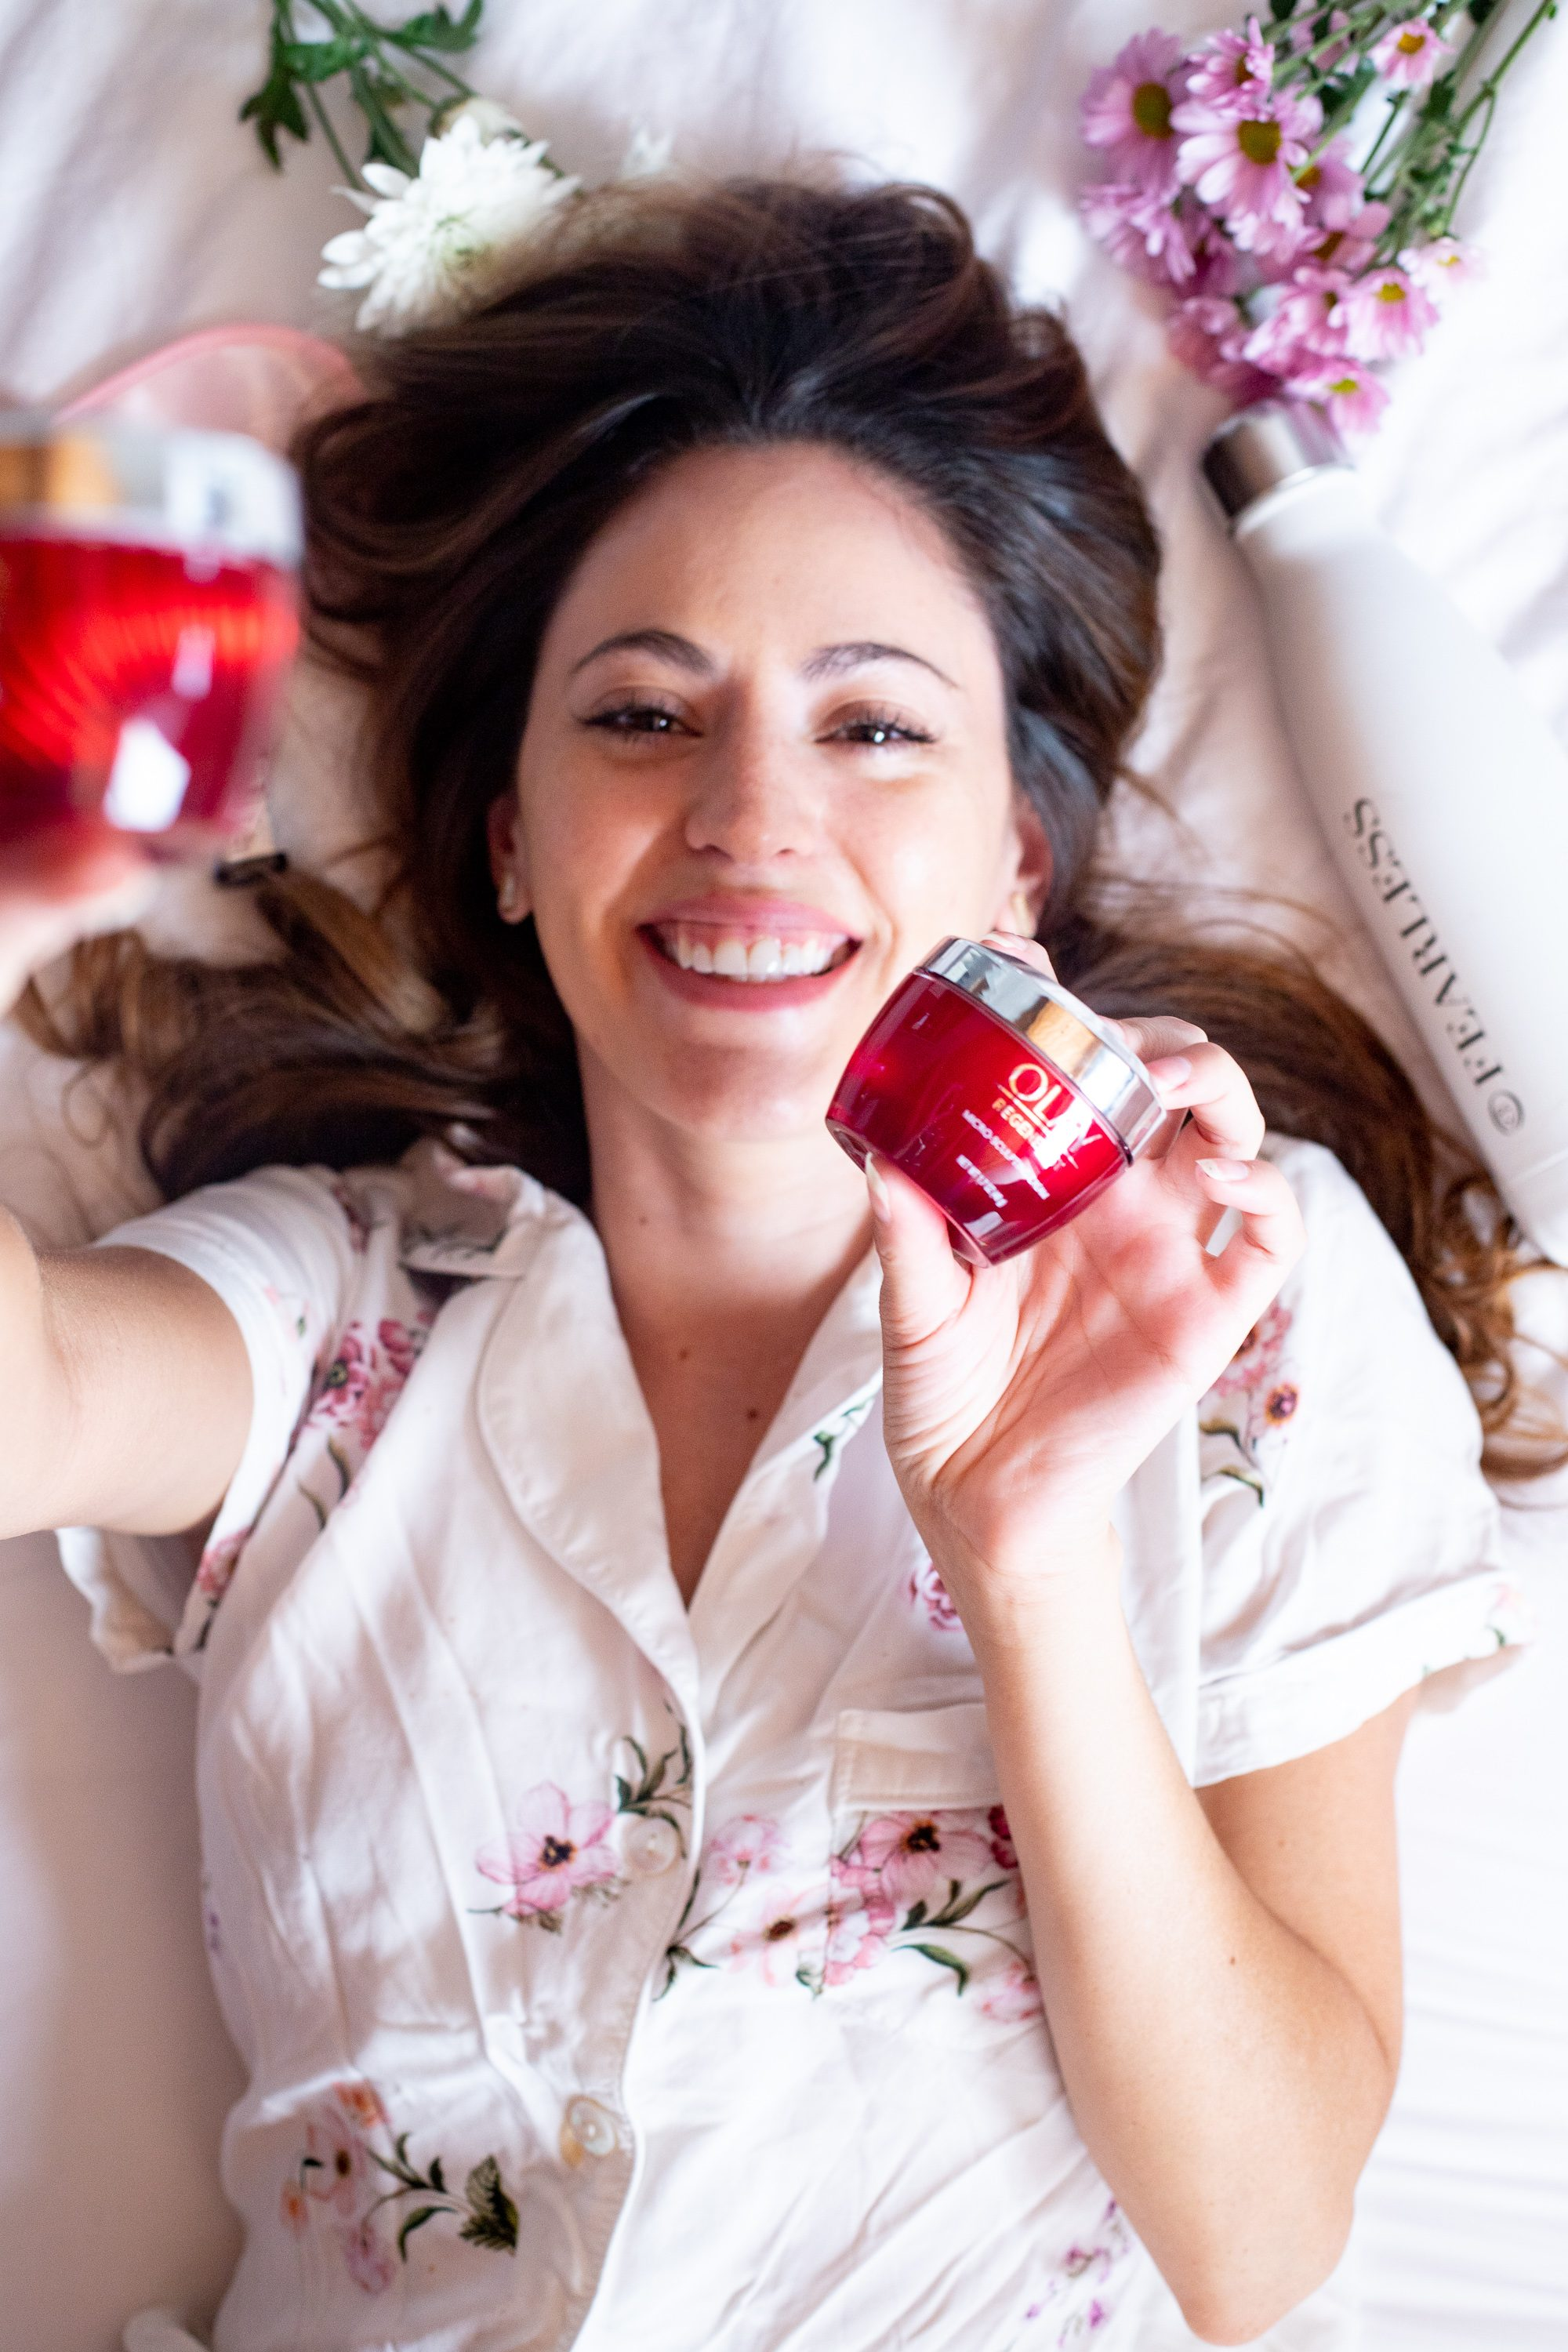 How to fight jetlag, how to fight jet lag, olay regenerist microsculpting cream, olay regenerist whip, olay red jar, tips for fighting jet lag, how to get rid of jet lag